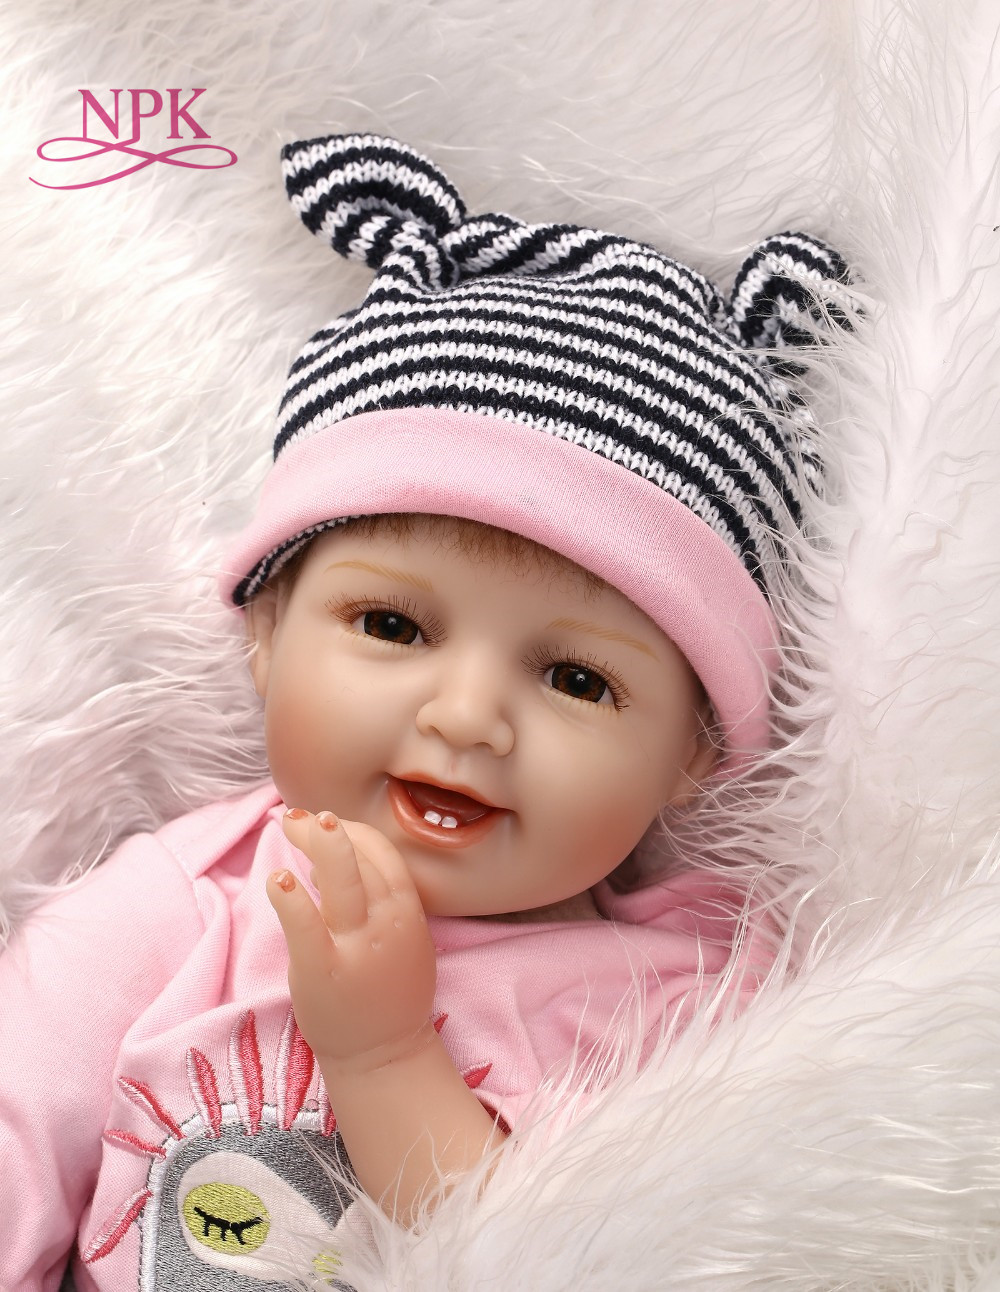 NPK Real Bebe girl doll reborn 55cm Soft Silicone Reborn Dolls kids baby toy dolls with rooted hair boneca de house plamates npk cute smile baby girl dolls real soft silicone reborn babies 55 cm with fiber hair realistic boneca reborn doll